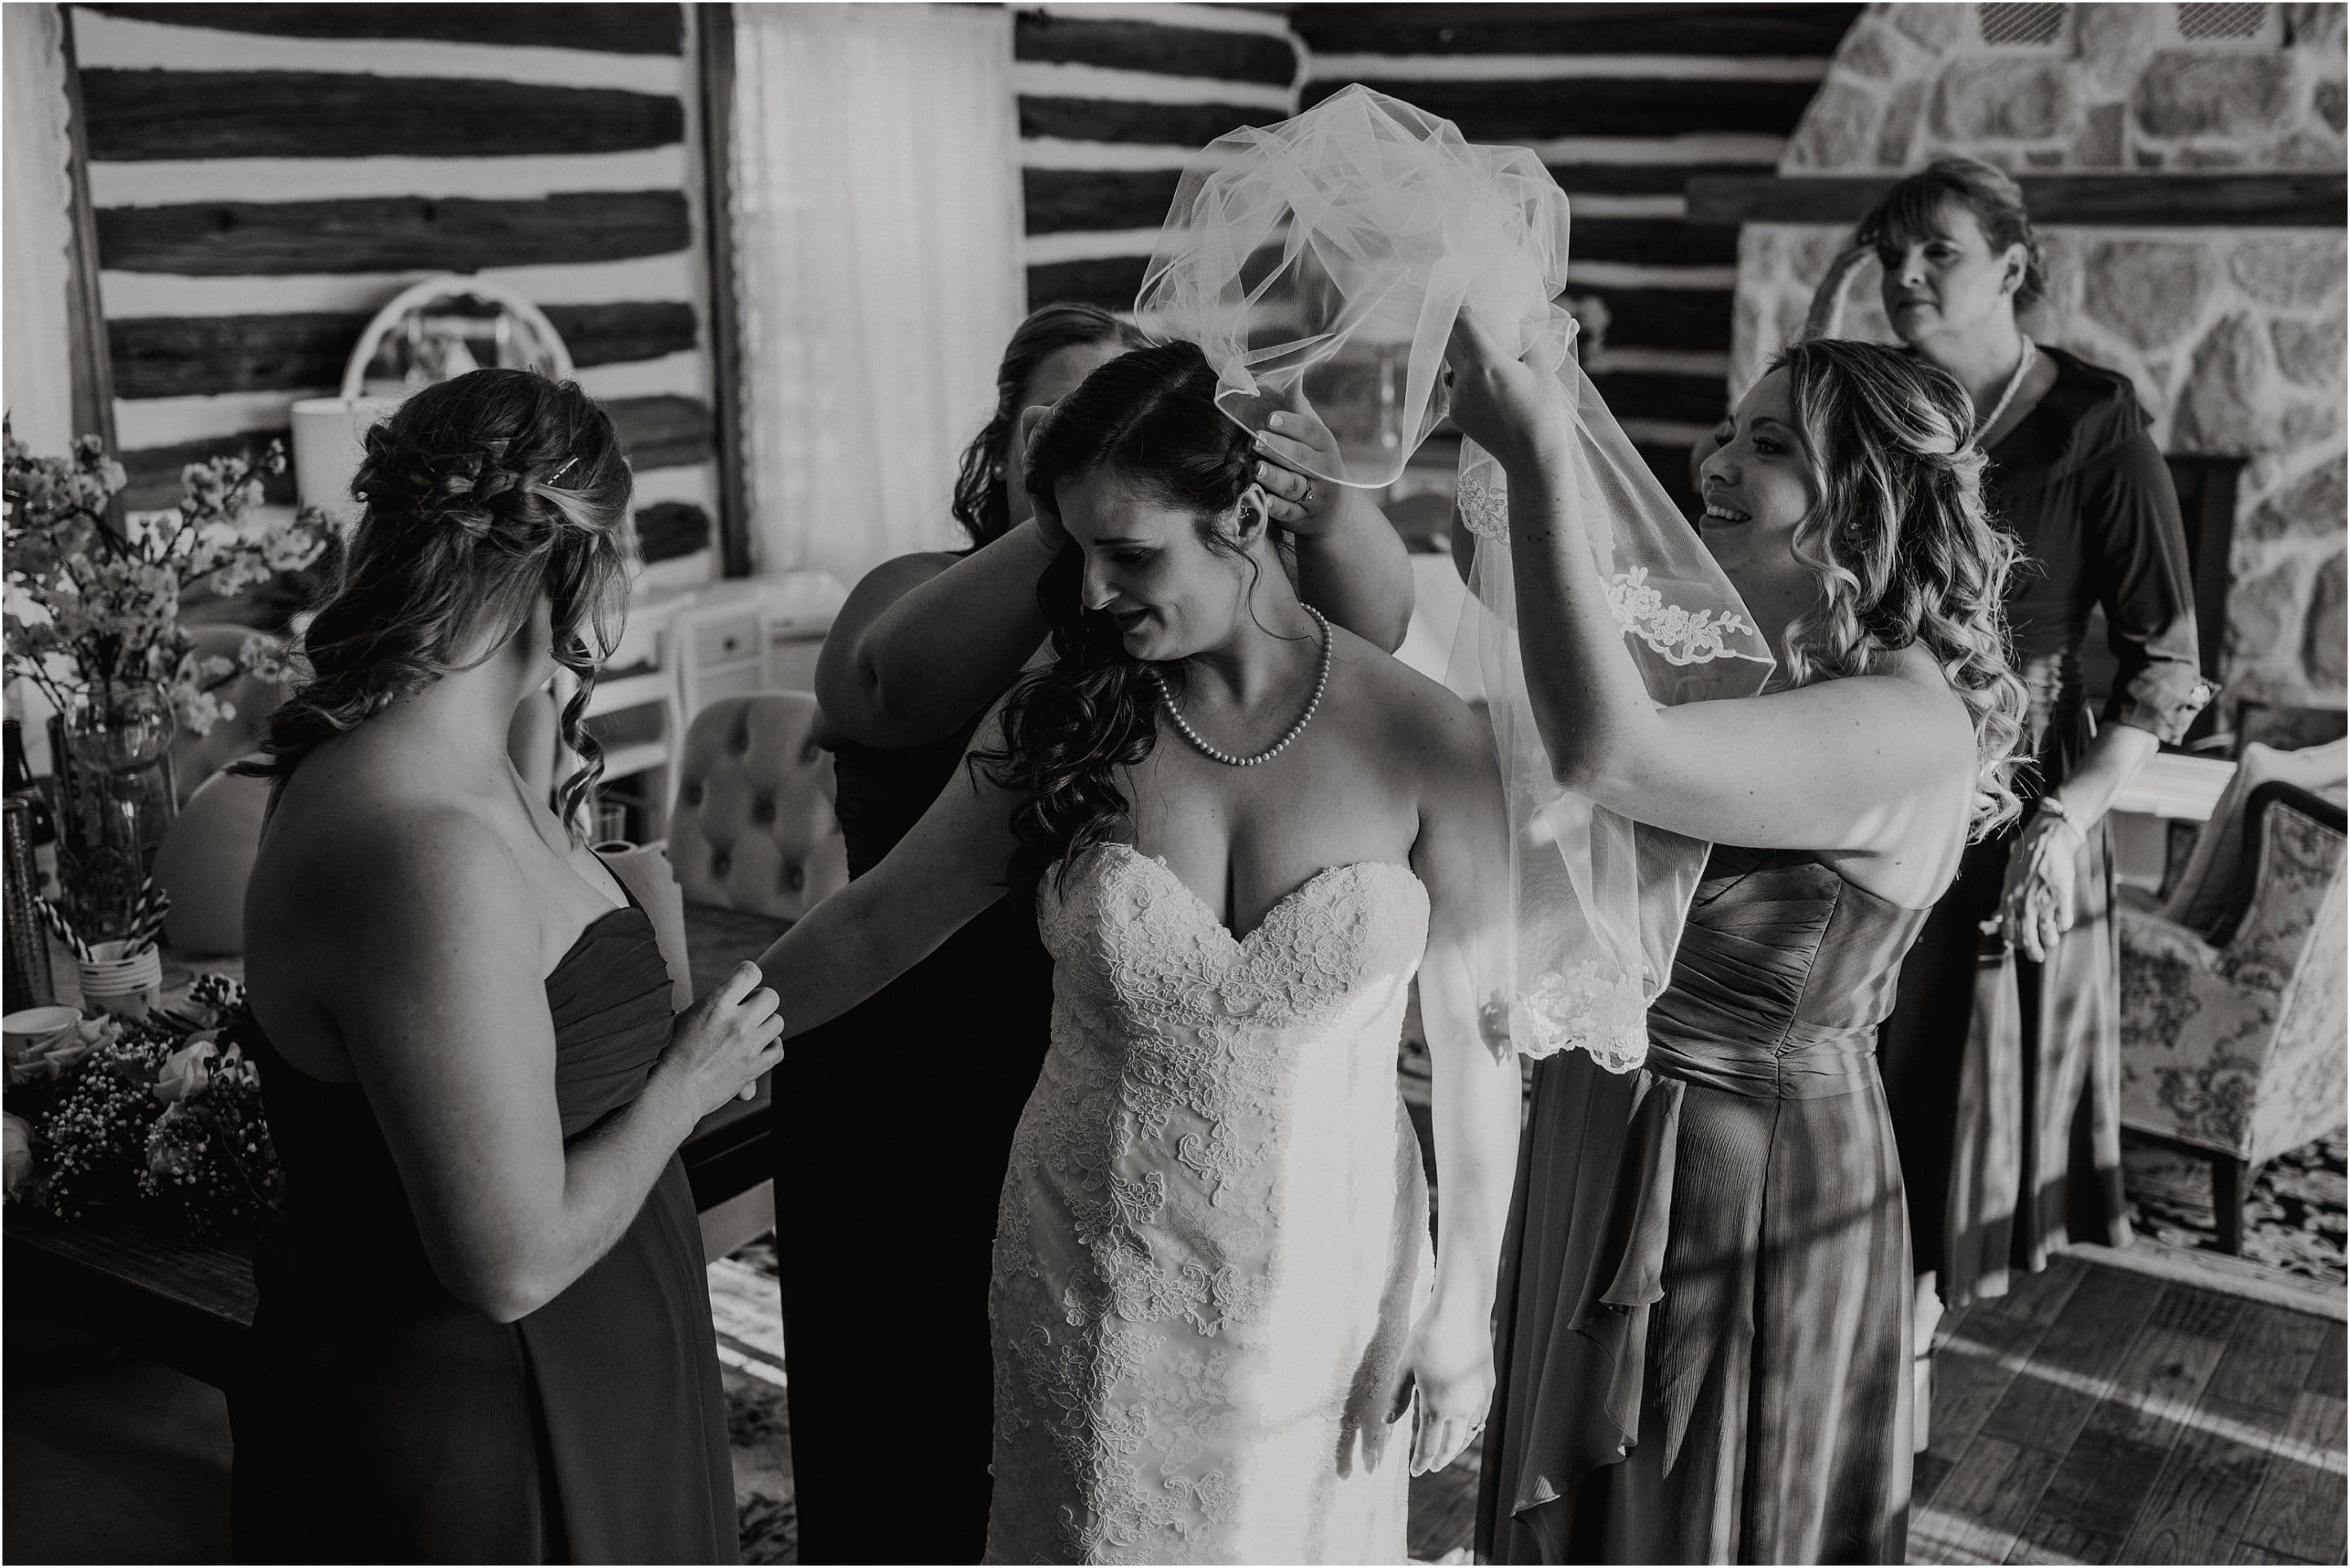 Bridesmaids help place the veil on the bride's head. Photo by Cindy Lottes Photography